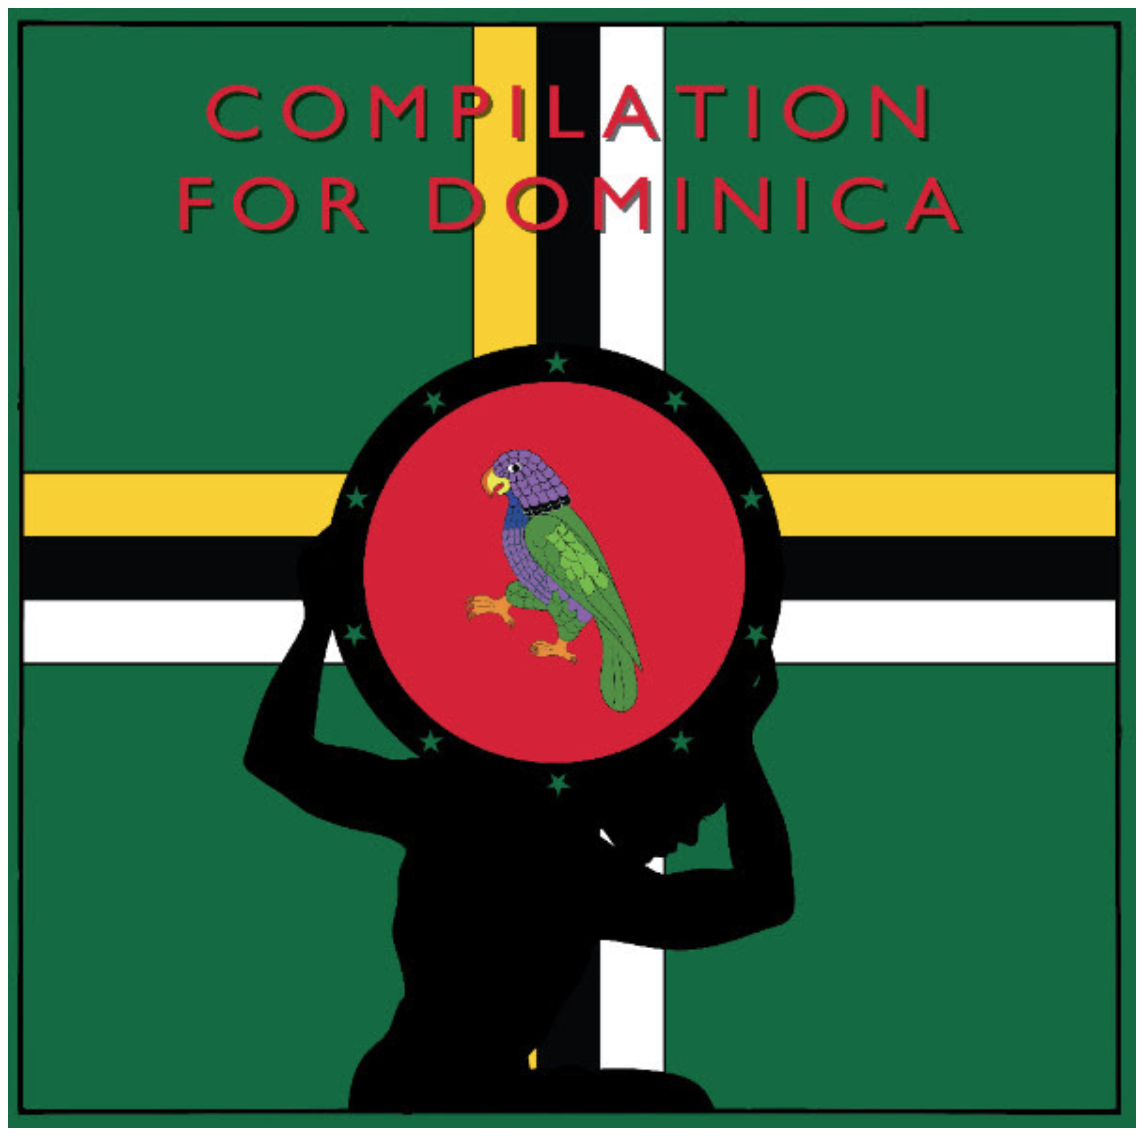 Compilation For Dominica, Rhythm Section, Bradley Zero, Glowing Palms